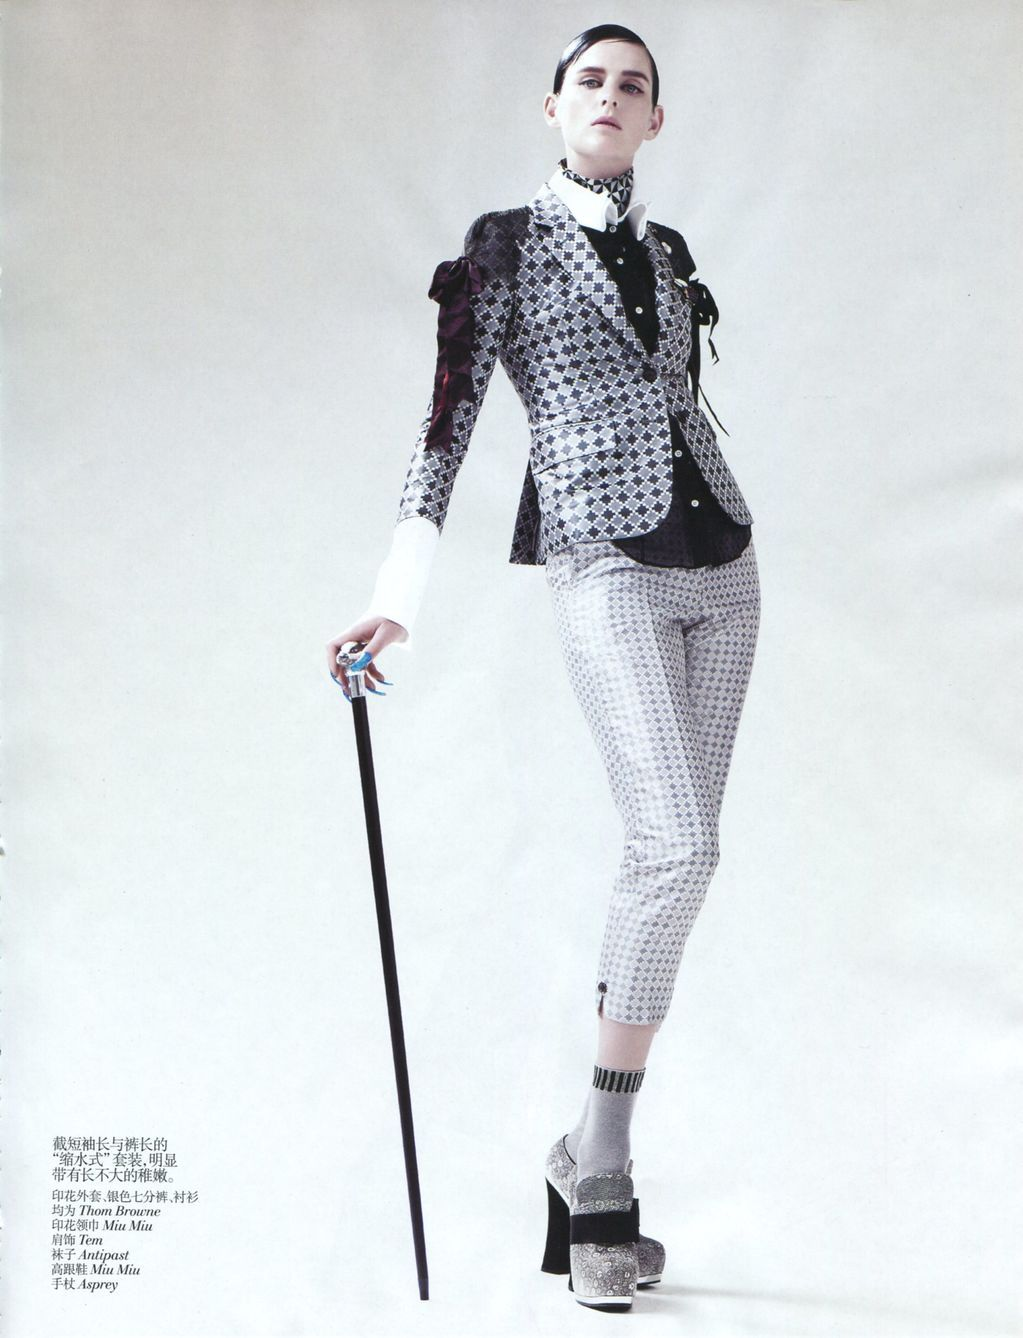 Vogue China September 2012, New Dandy Stella Tennant by Willy Vanderperre